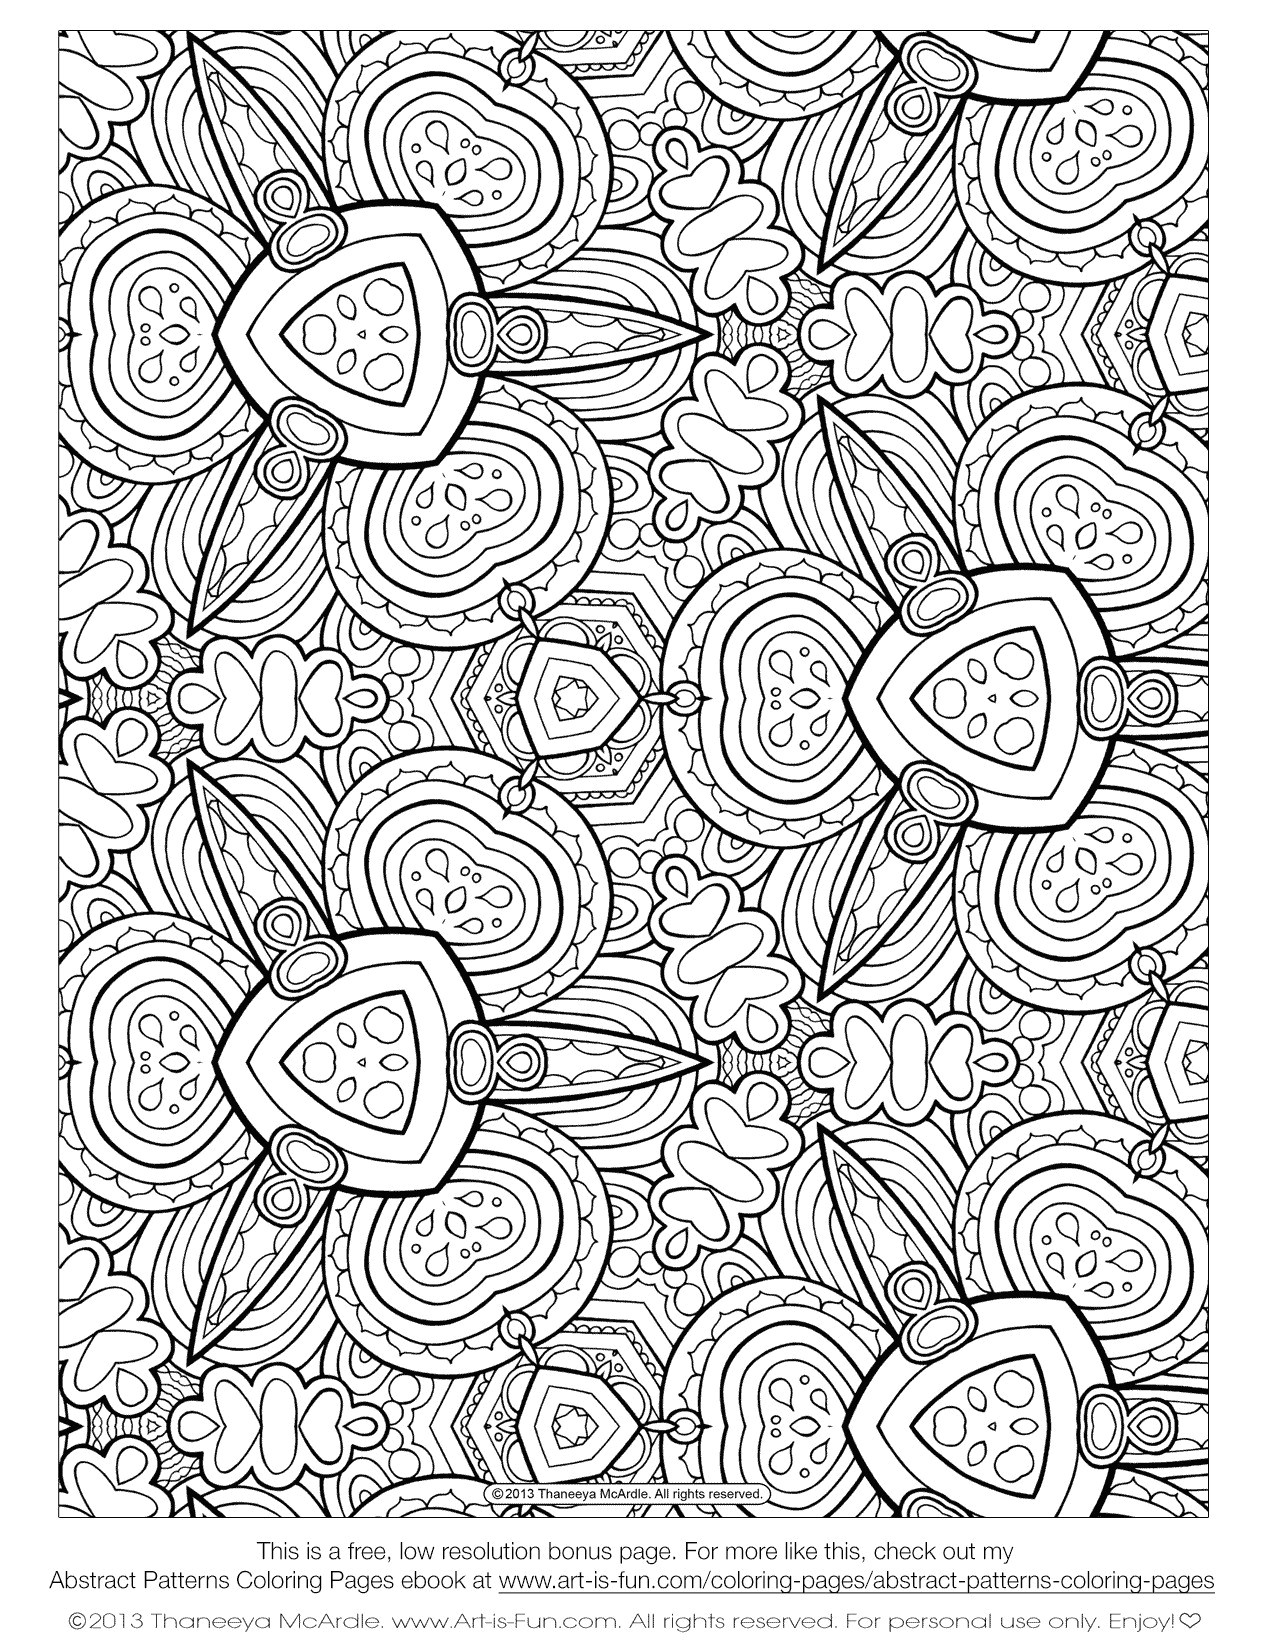 cool drawings of roses and hearts beautiful free coloring page maker awesome awesome coloring page for